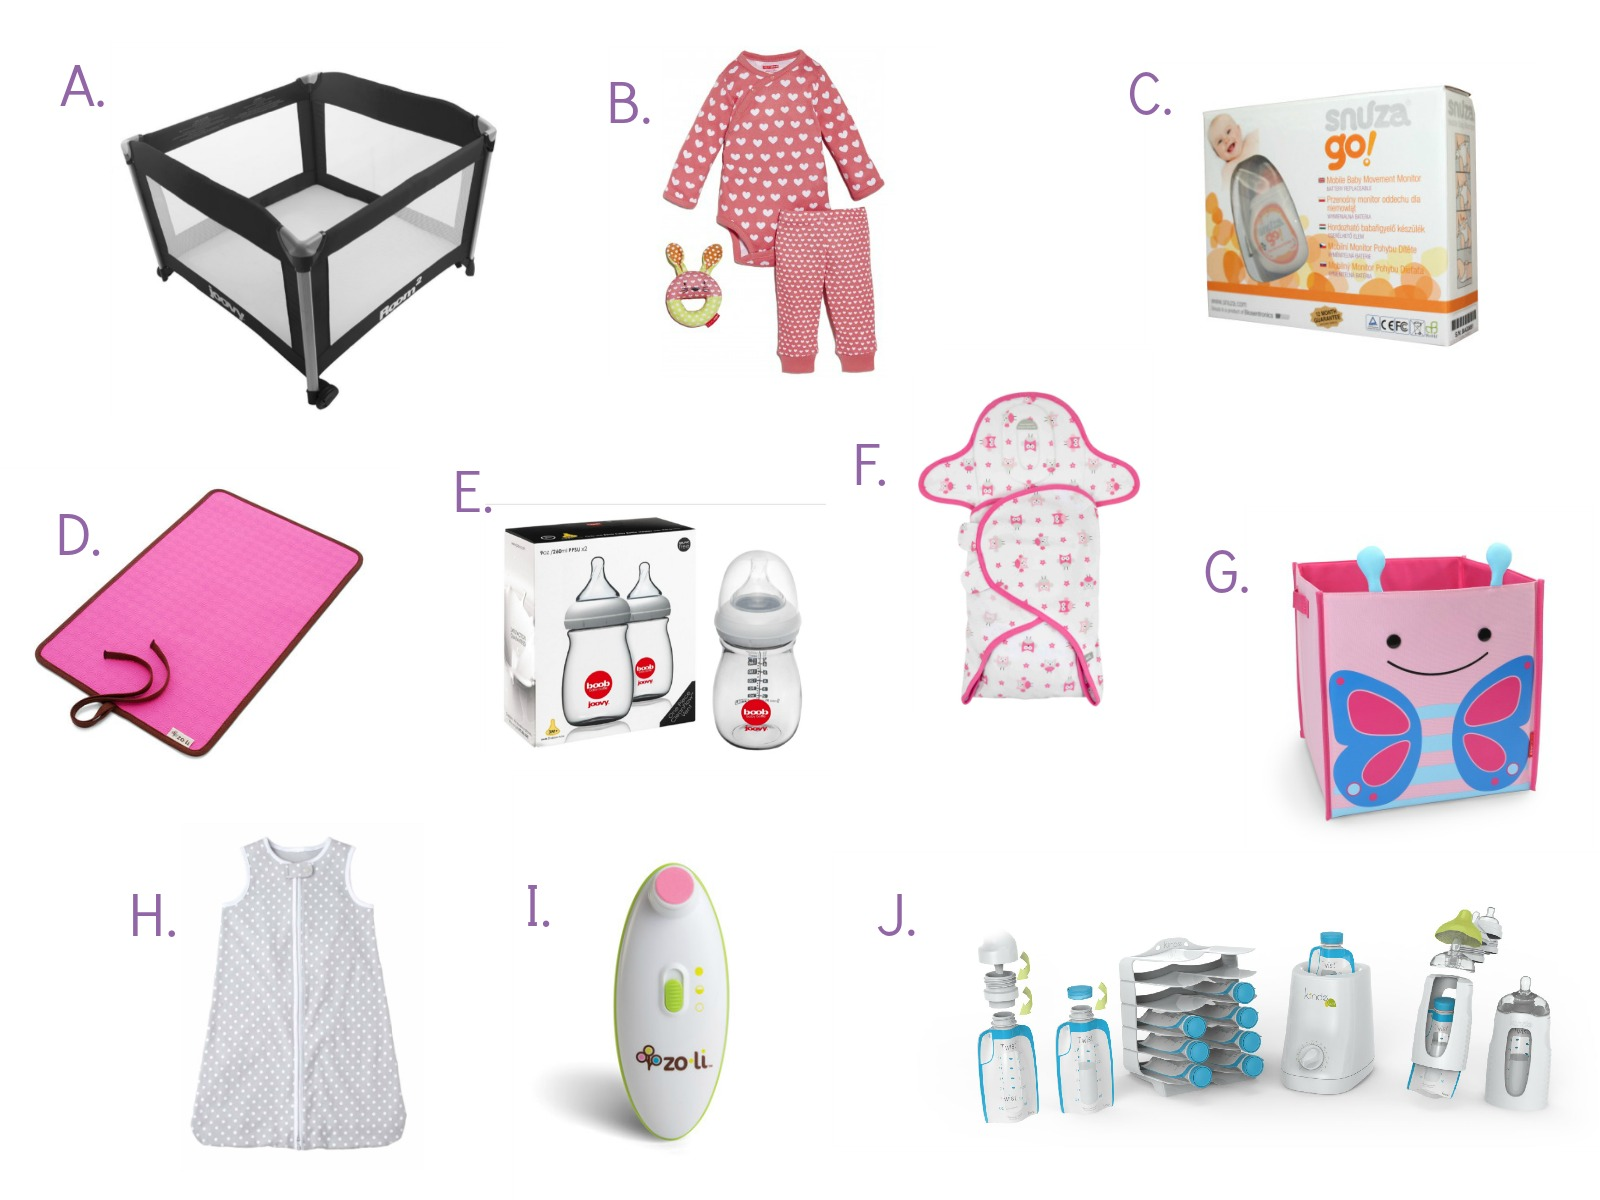 CELEB BABY LAUNDRY EXPECTANT MOM GIFT GUIDE